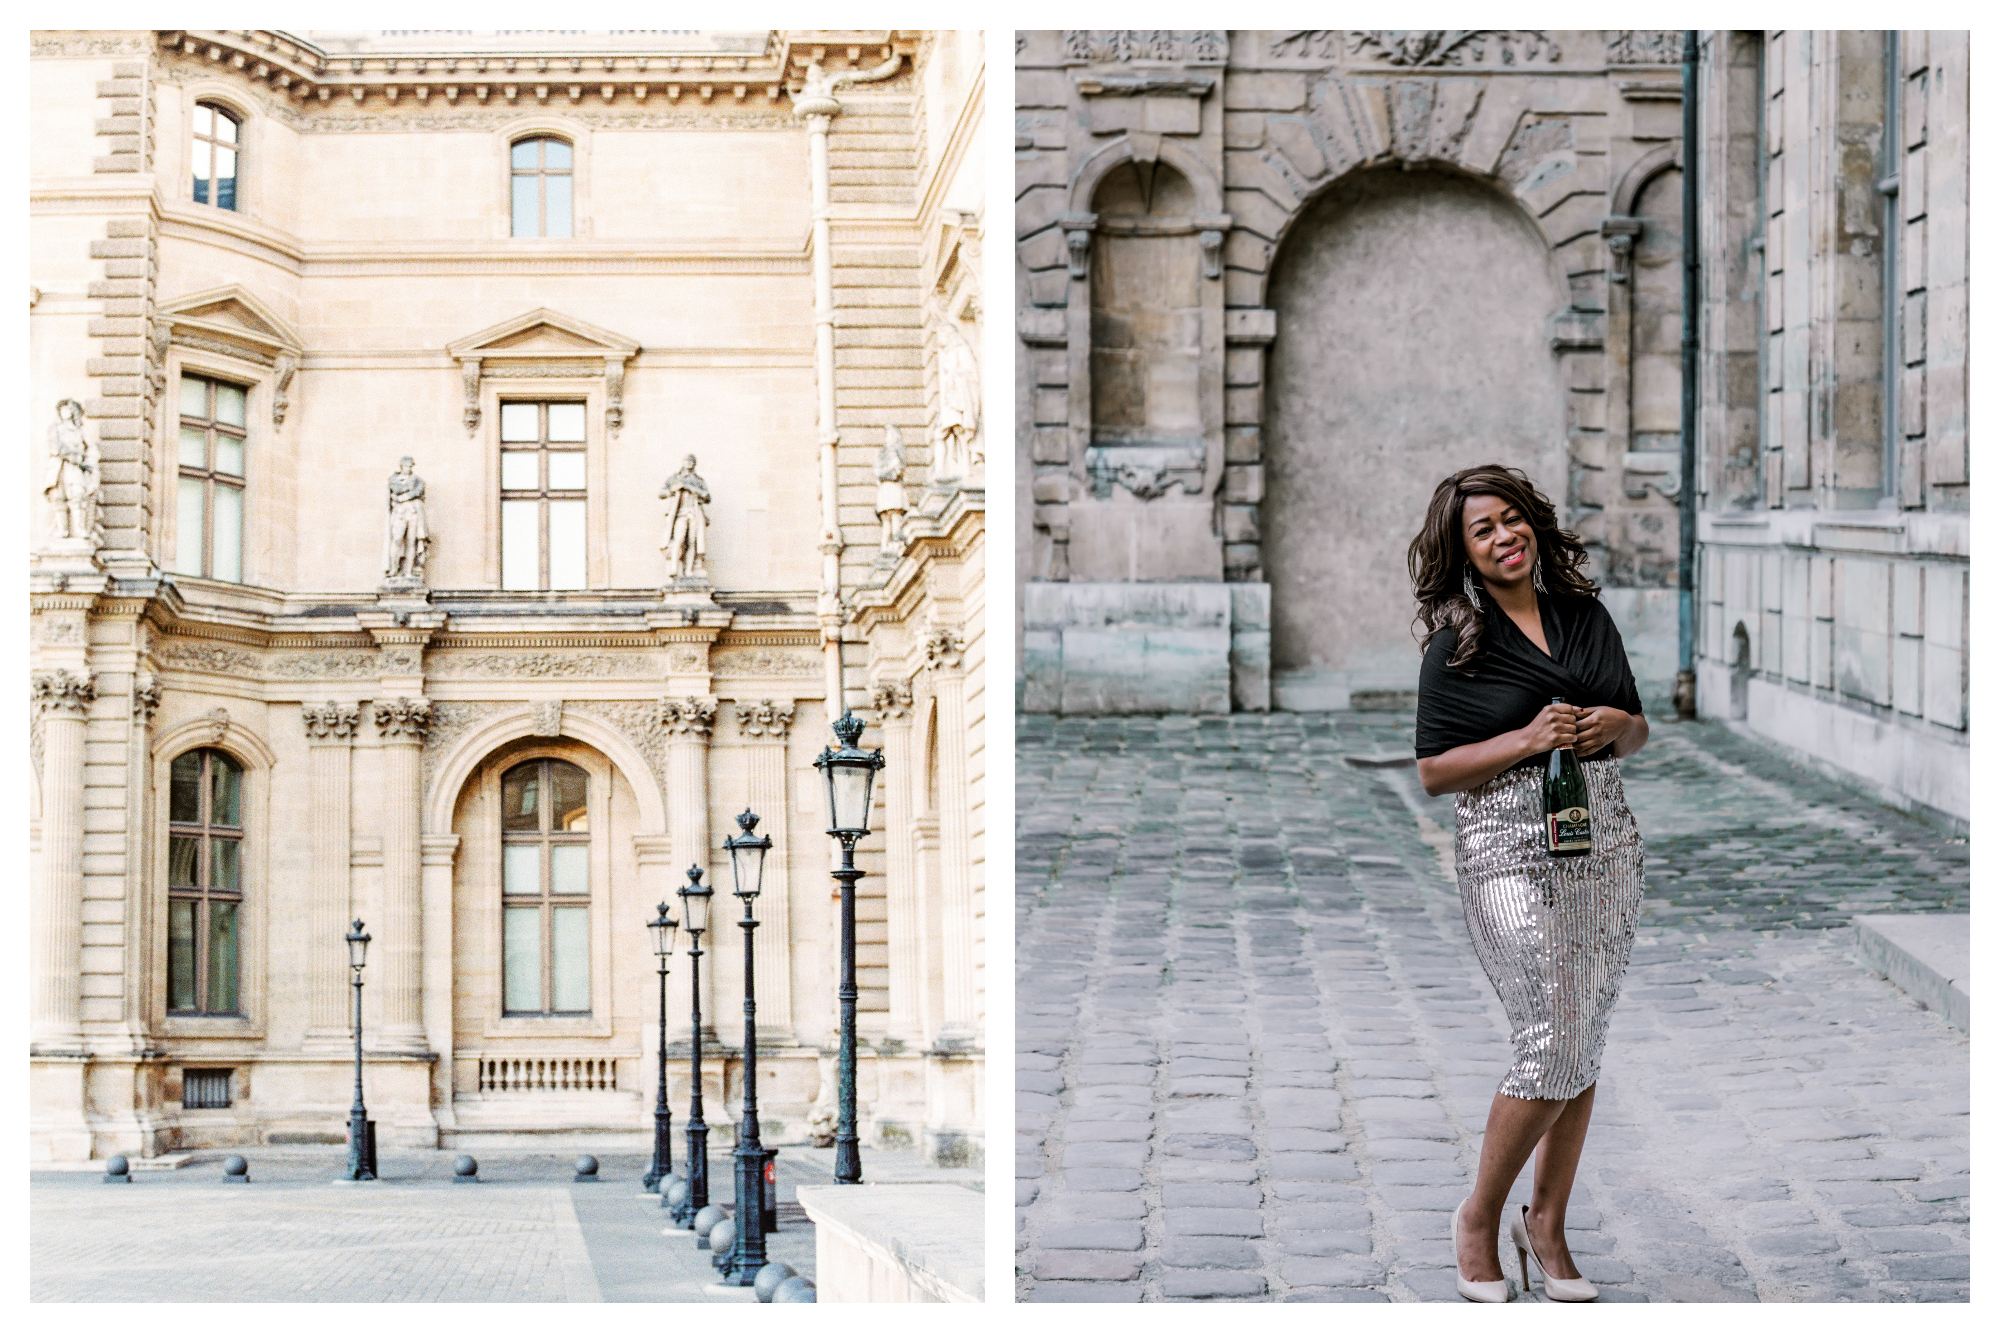 On left: A peaceful morning at the Louvre in an empty corner of the courtyard, the statues looking down onto the classic lampposts. On right: Tanisha Townsend of Girl Meets Glass, her wine tasting and tour company, smiles for the camera, holding a bottle of champagne.